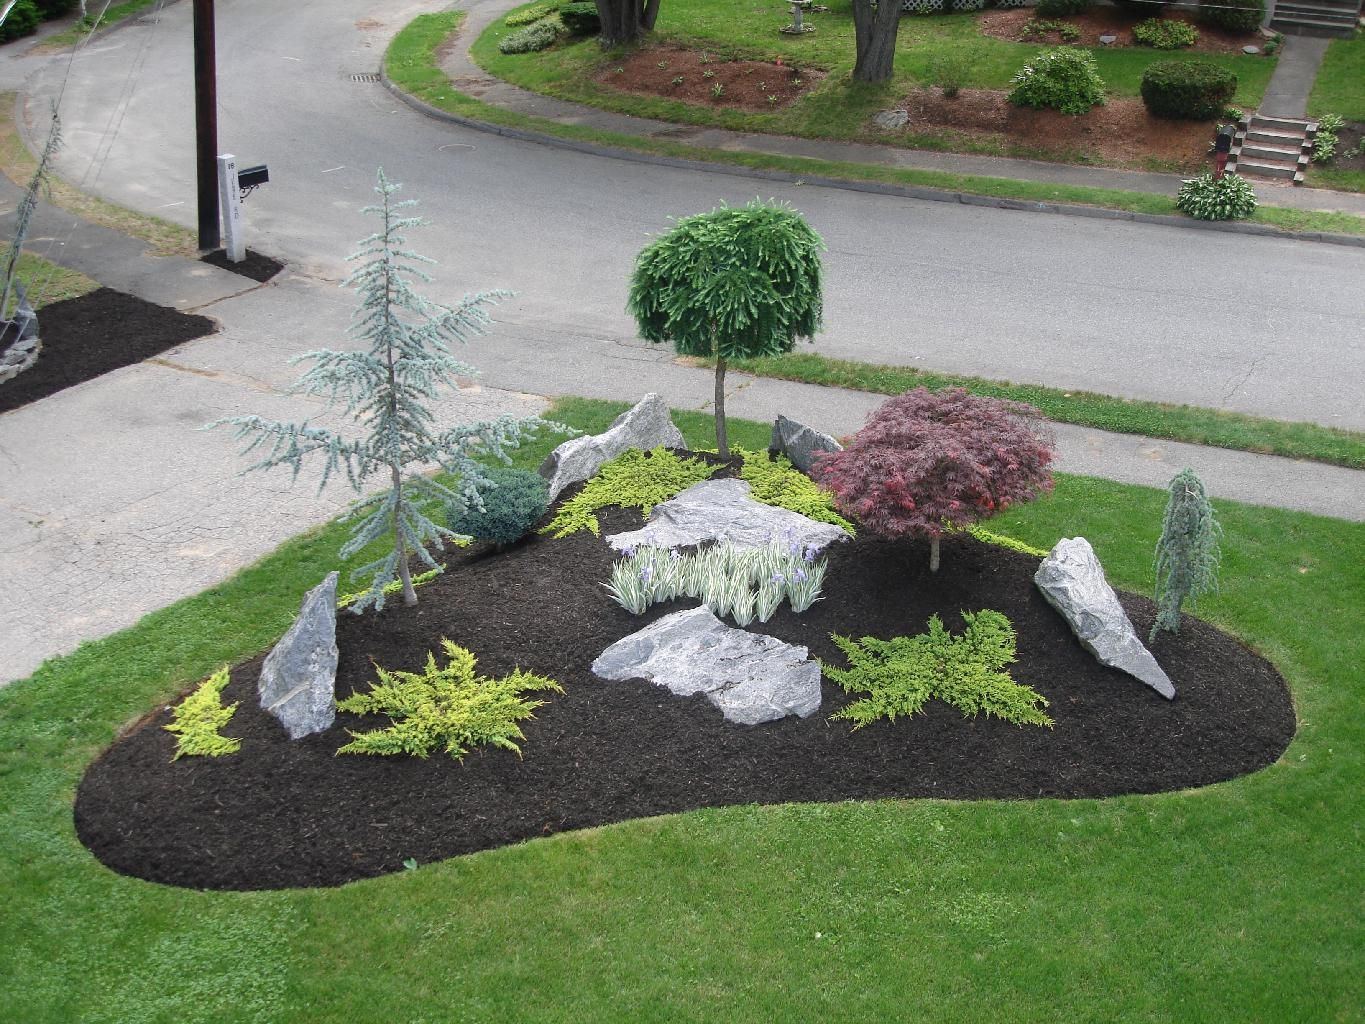 Simple landscape designs with rock beds google search for Simple garden design